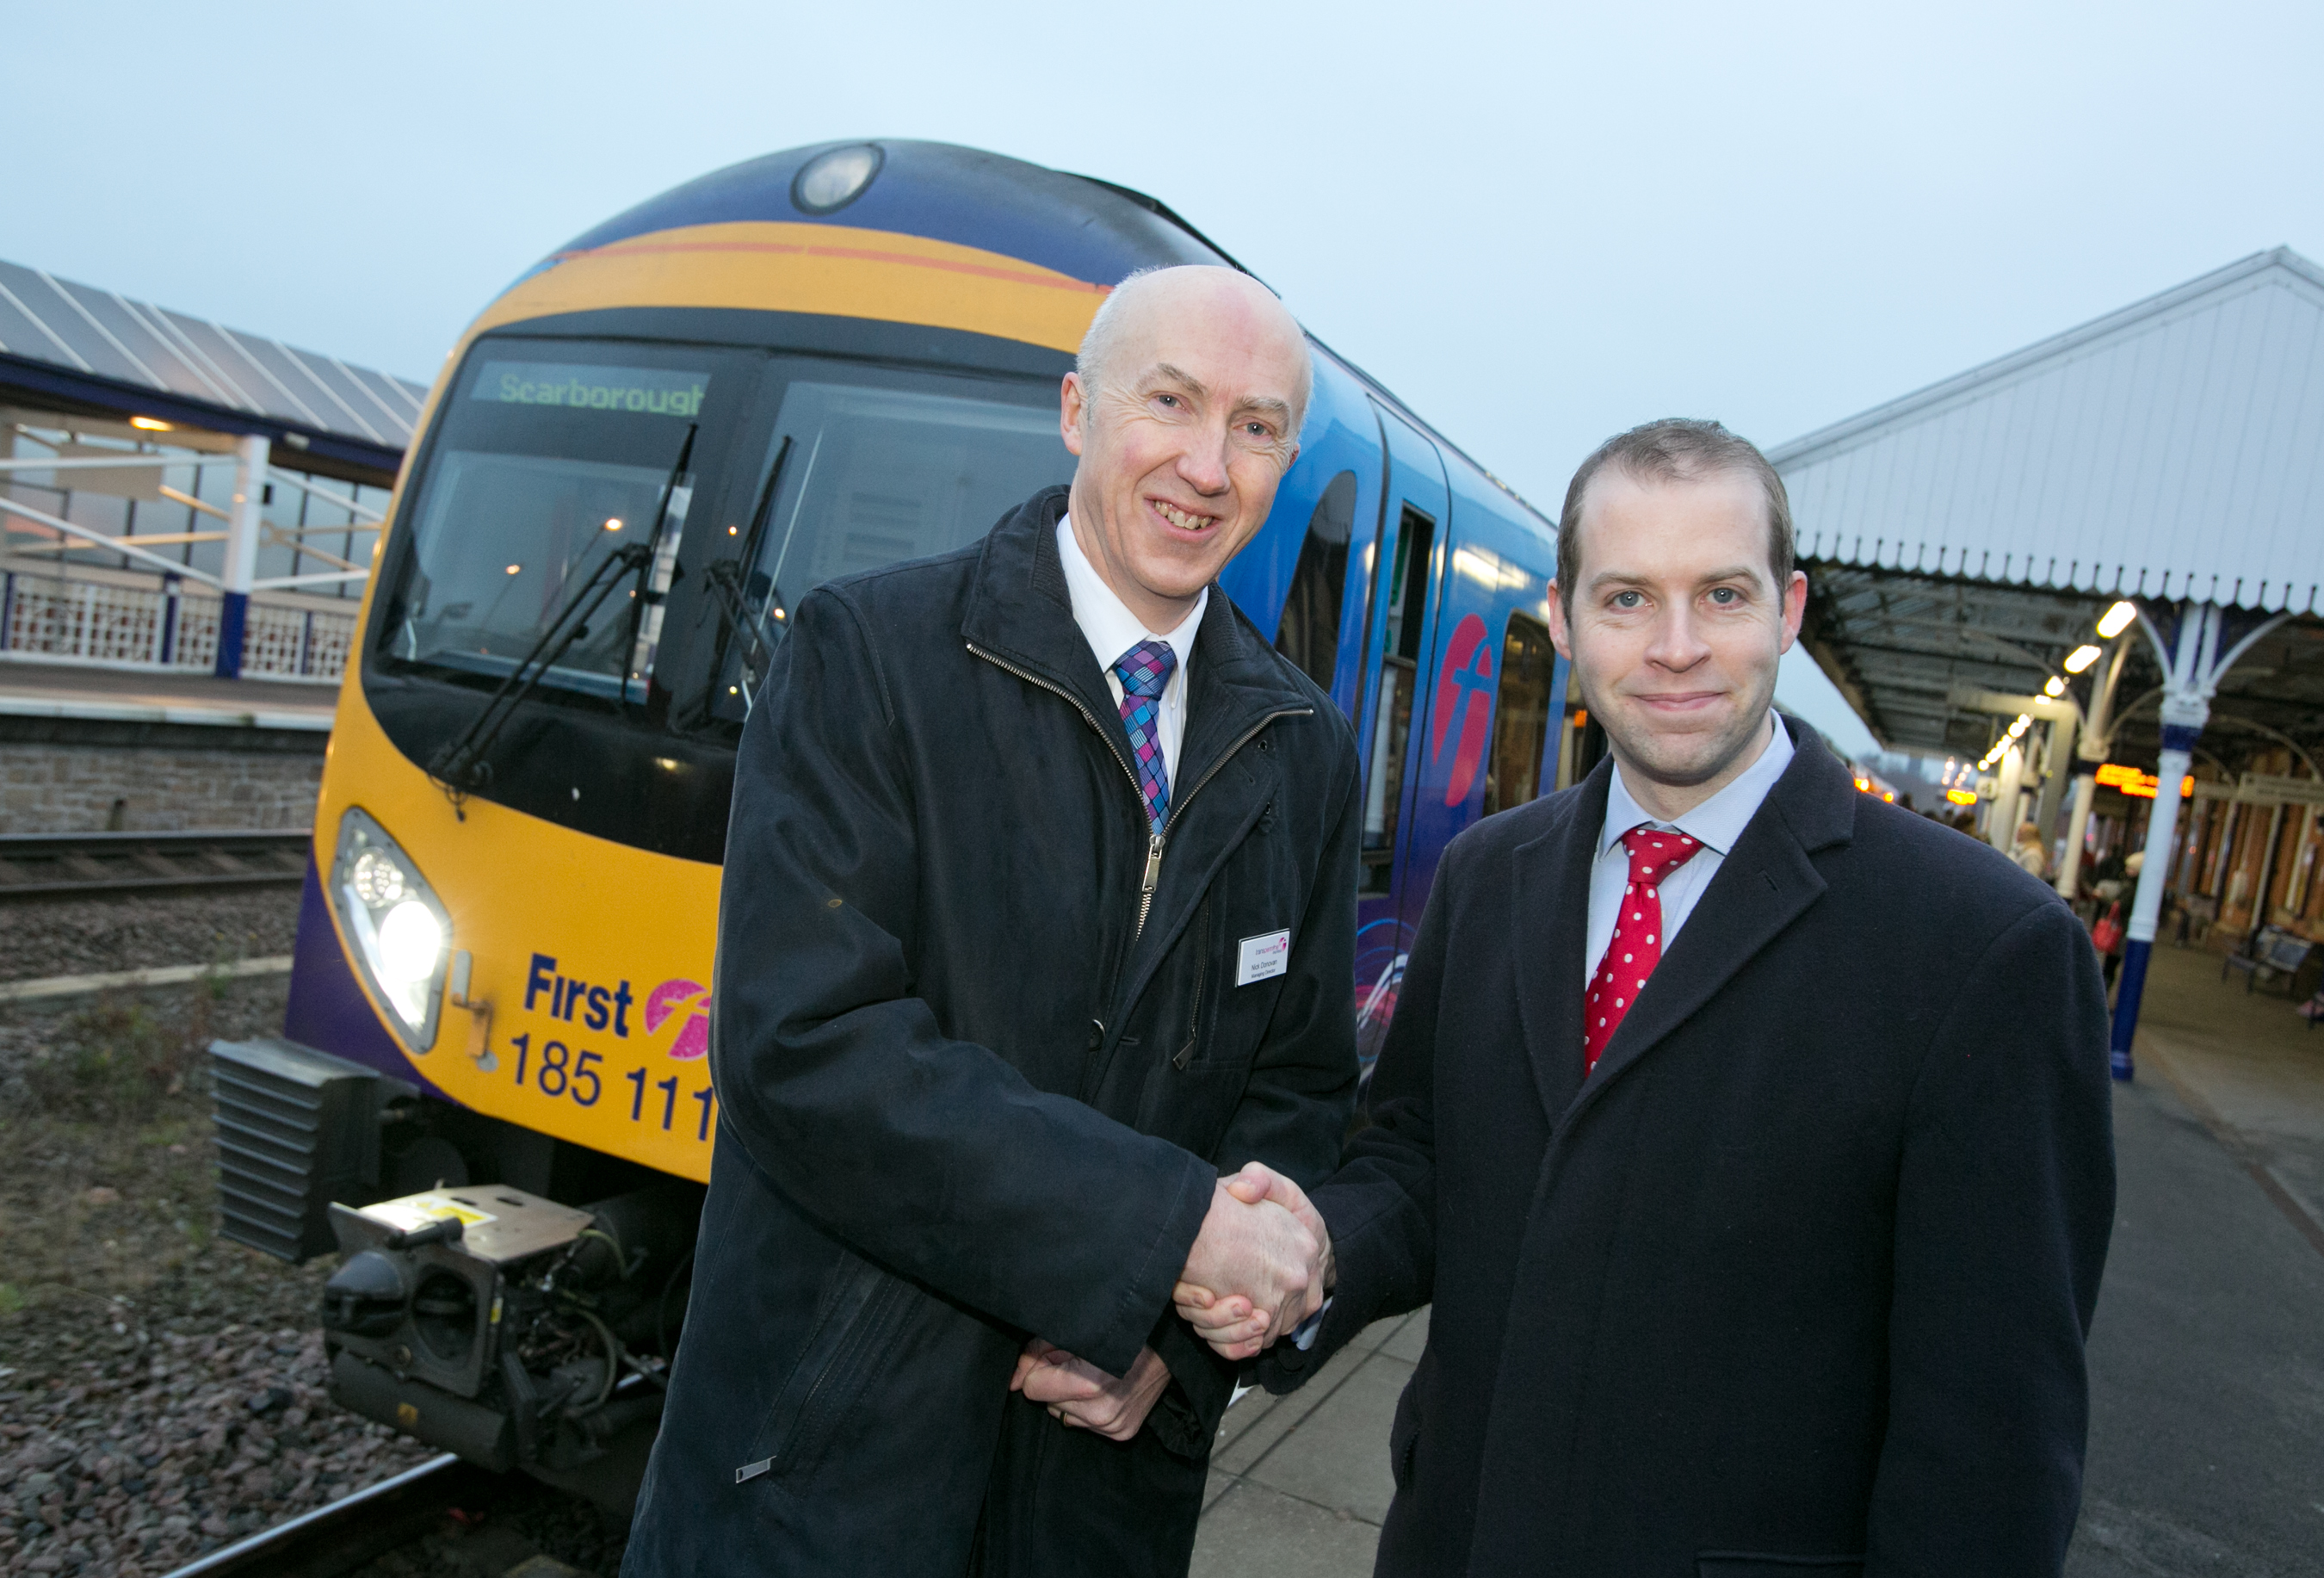 Jonathan_Reynolds_MP_and_Nick_Donovan_FTPE_MD_celebrate_the_launch_of_new_rail_services_from_Stalybridge_2.jpg